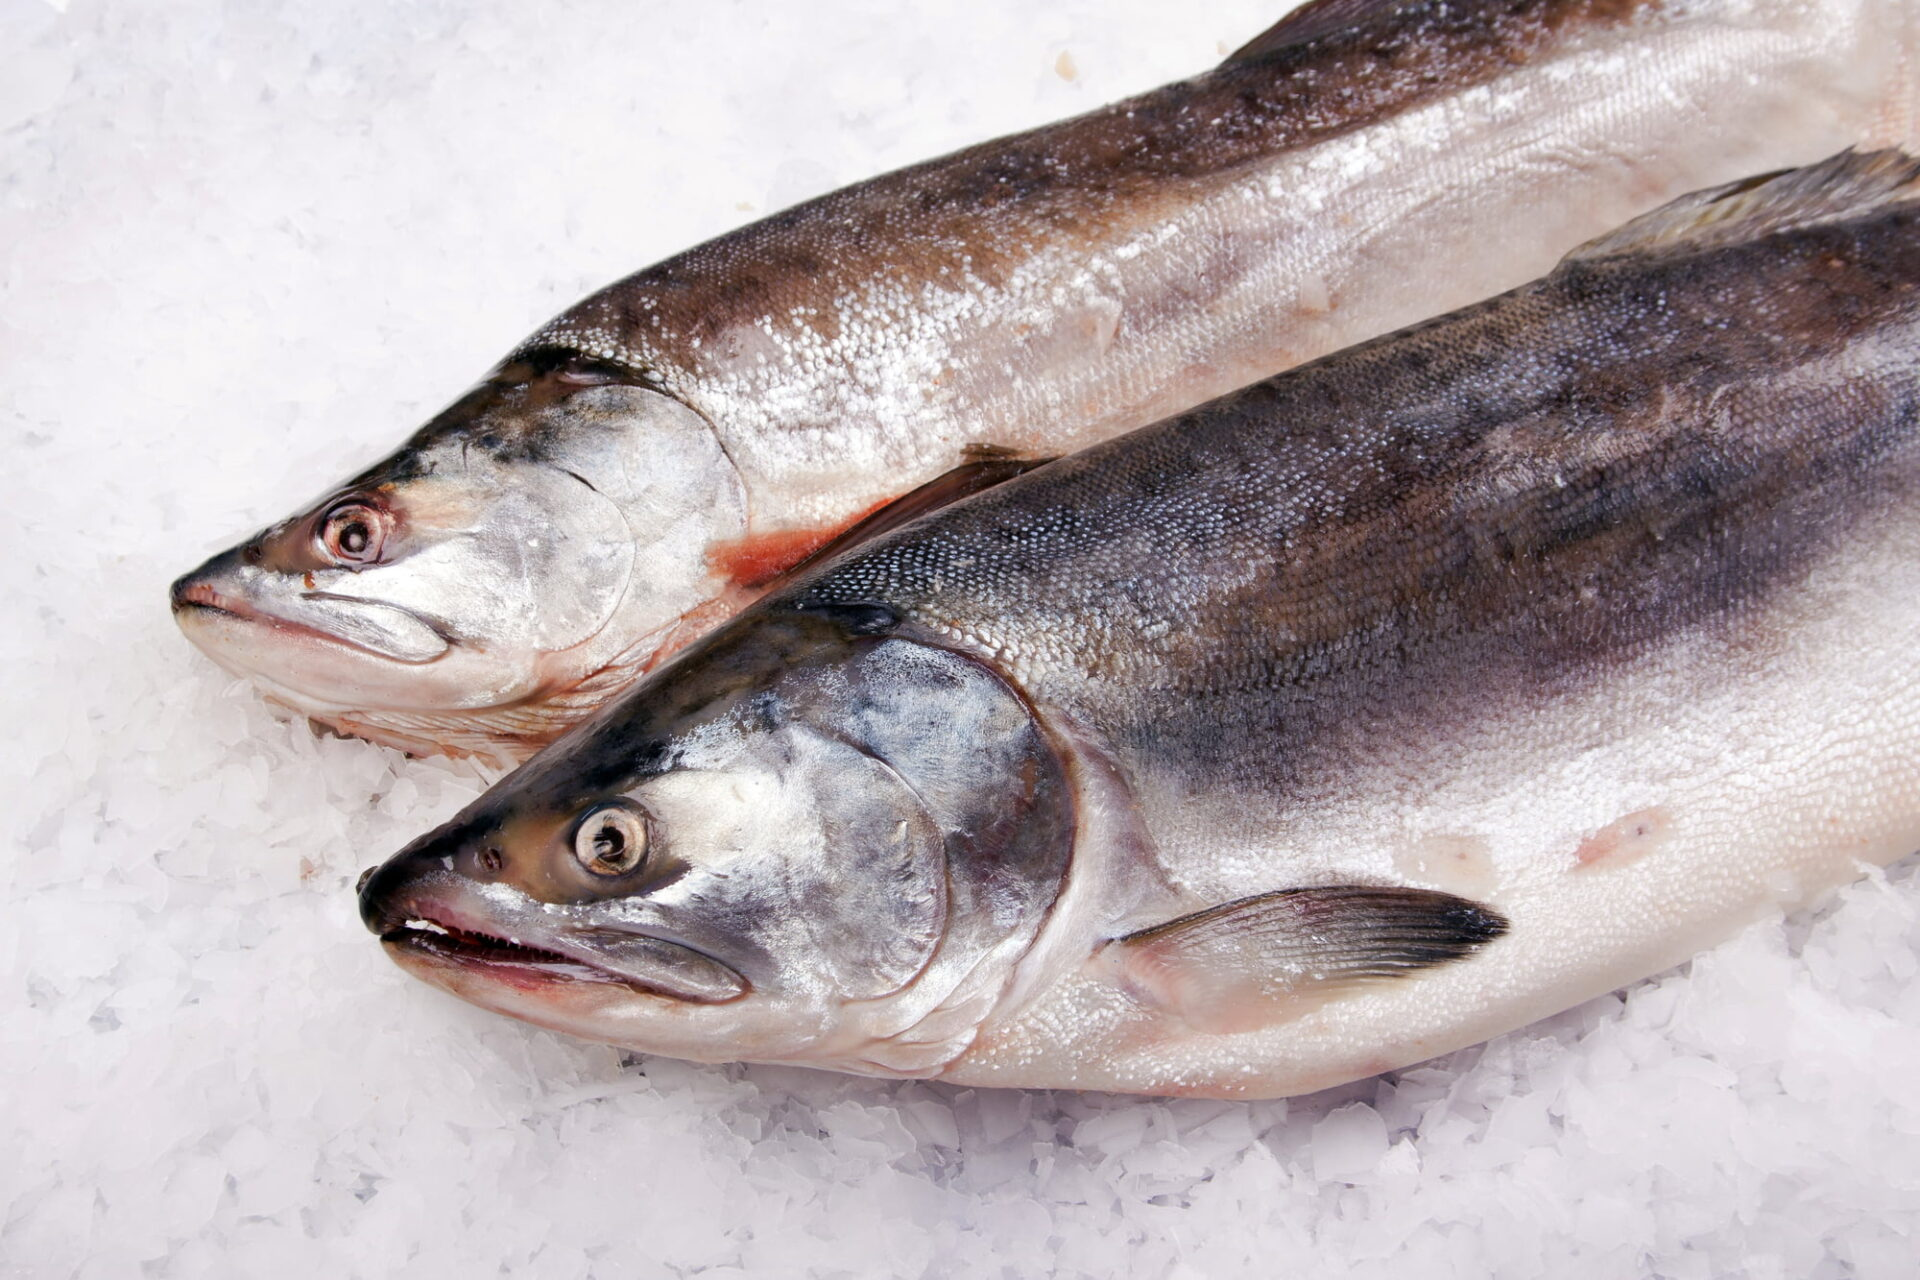 Farmed salmon from Norway